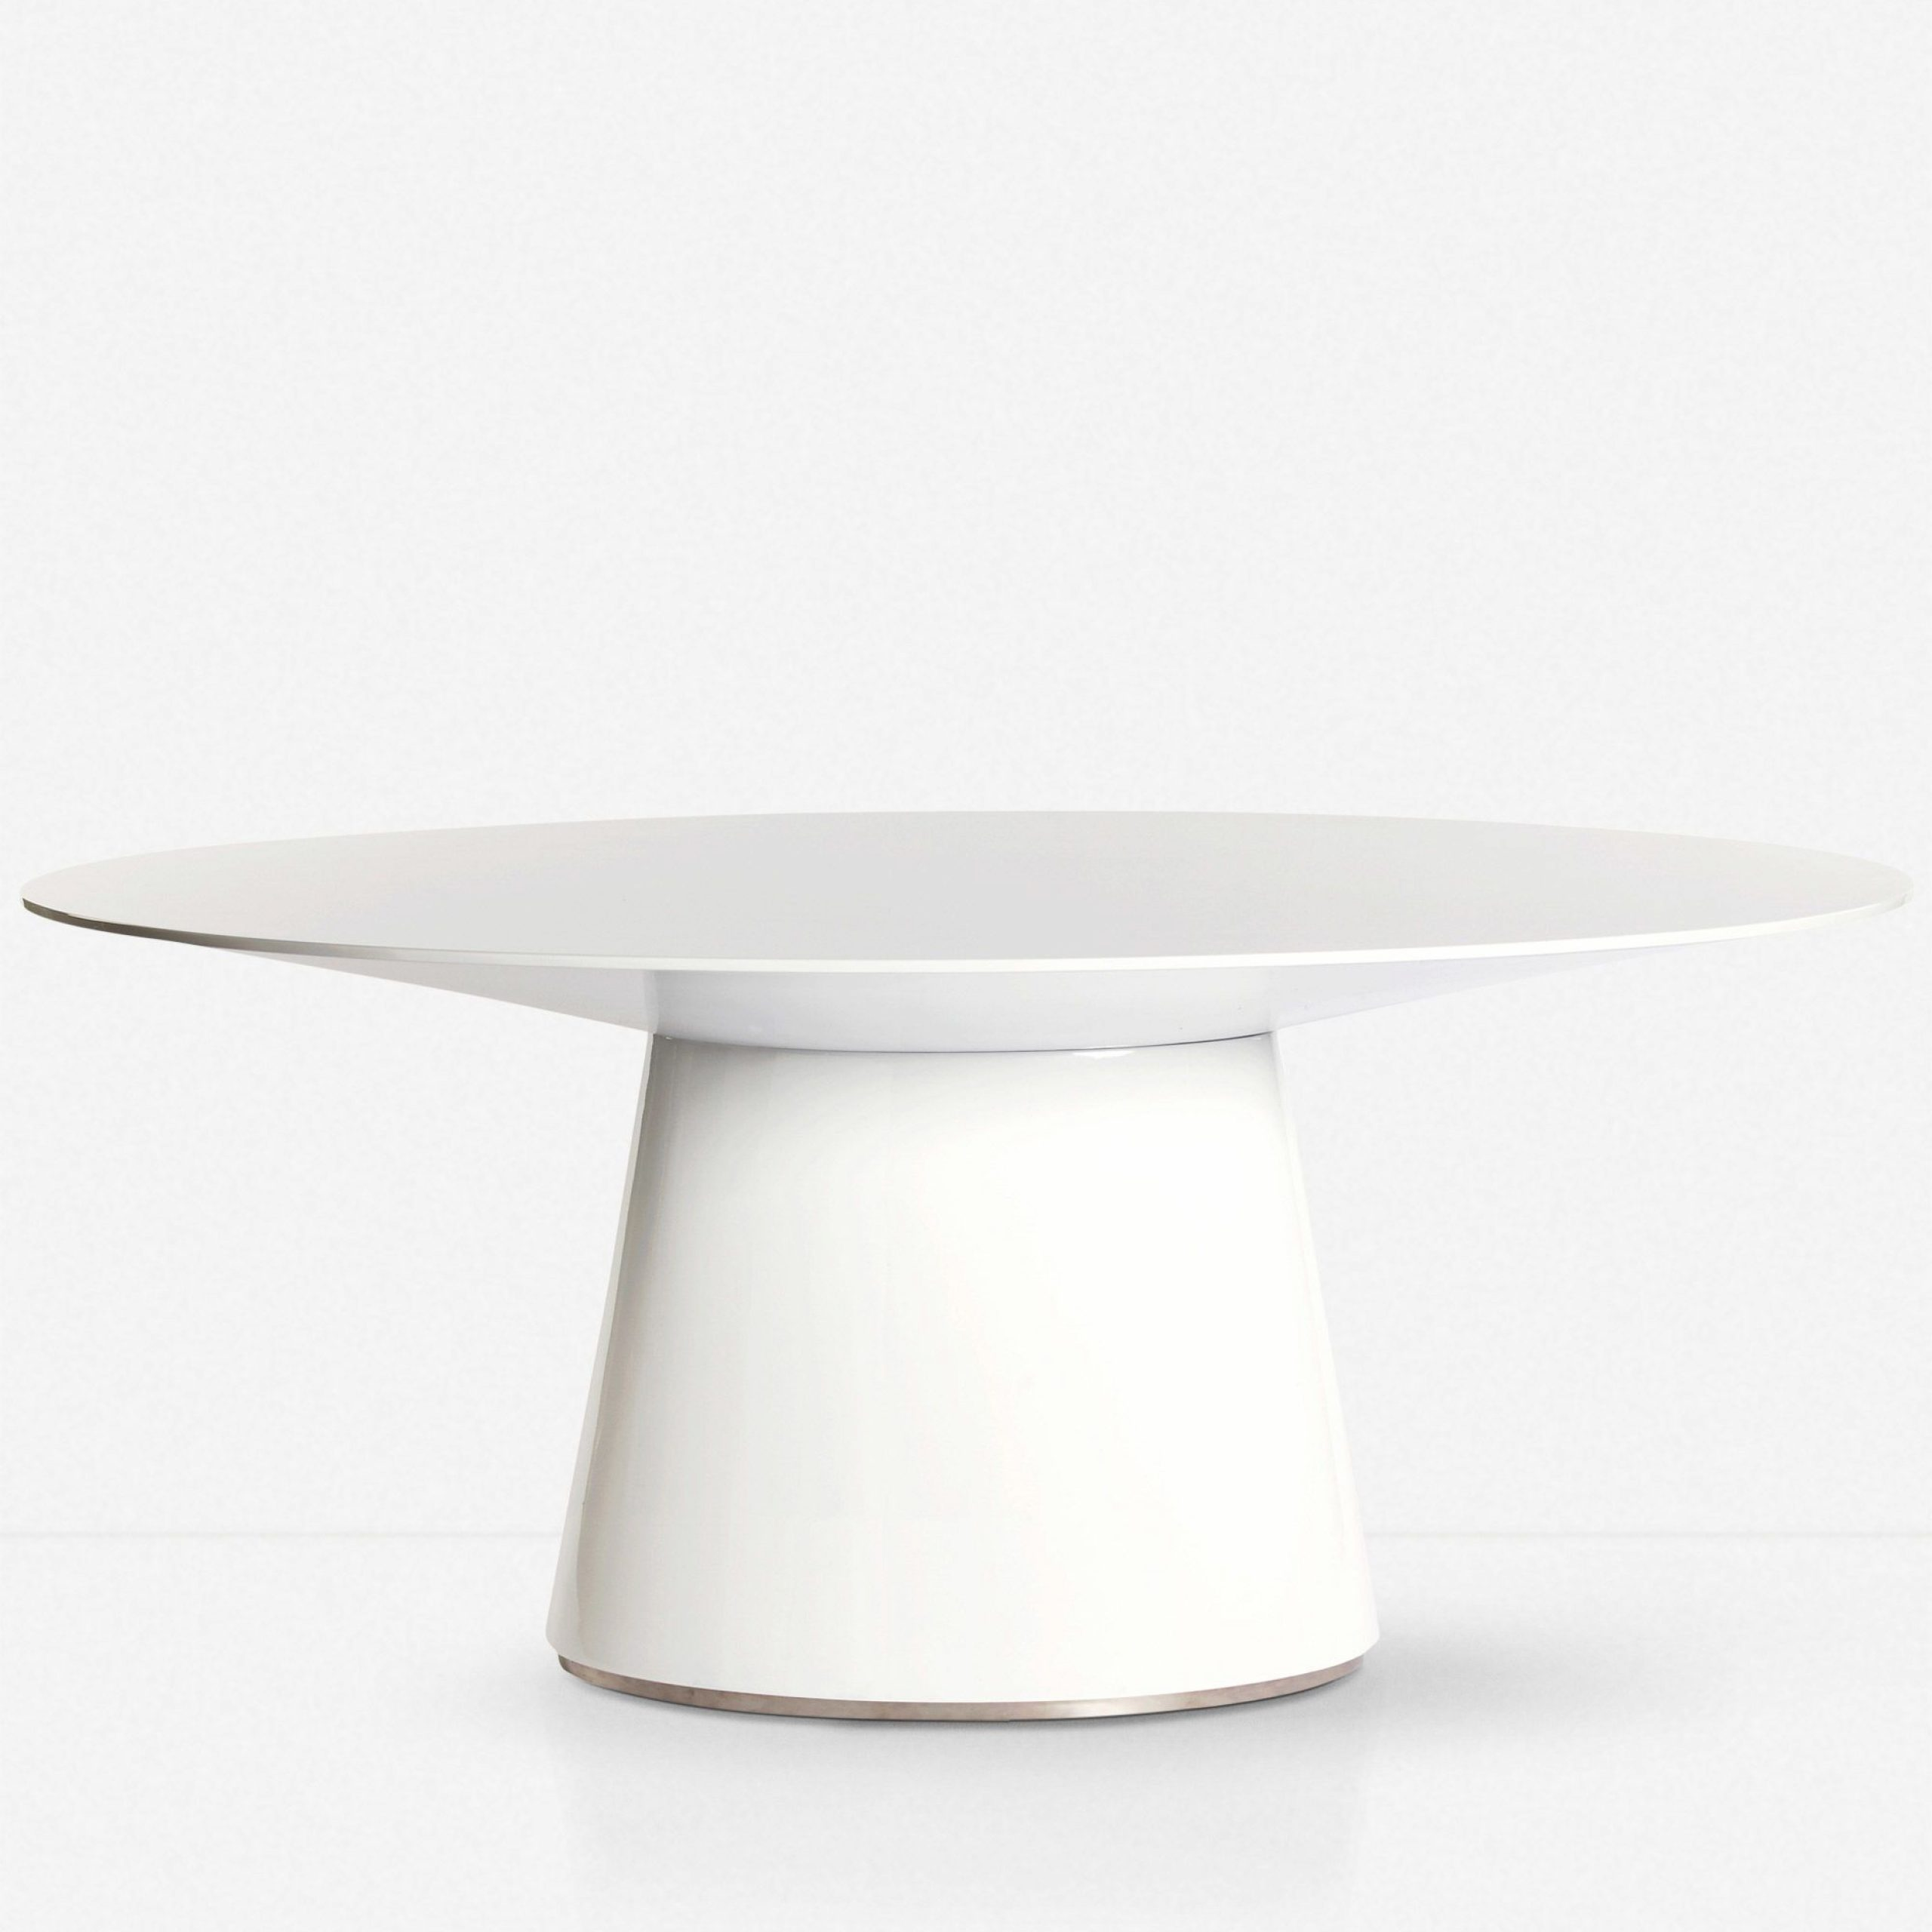 Lulu & Georgia Magar Oval Dining Table, White In 2019 Within Recent Warner Round Pedestal Dining Tables (View 23 of 25)